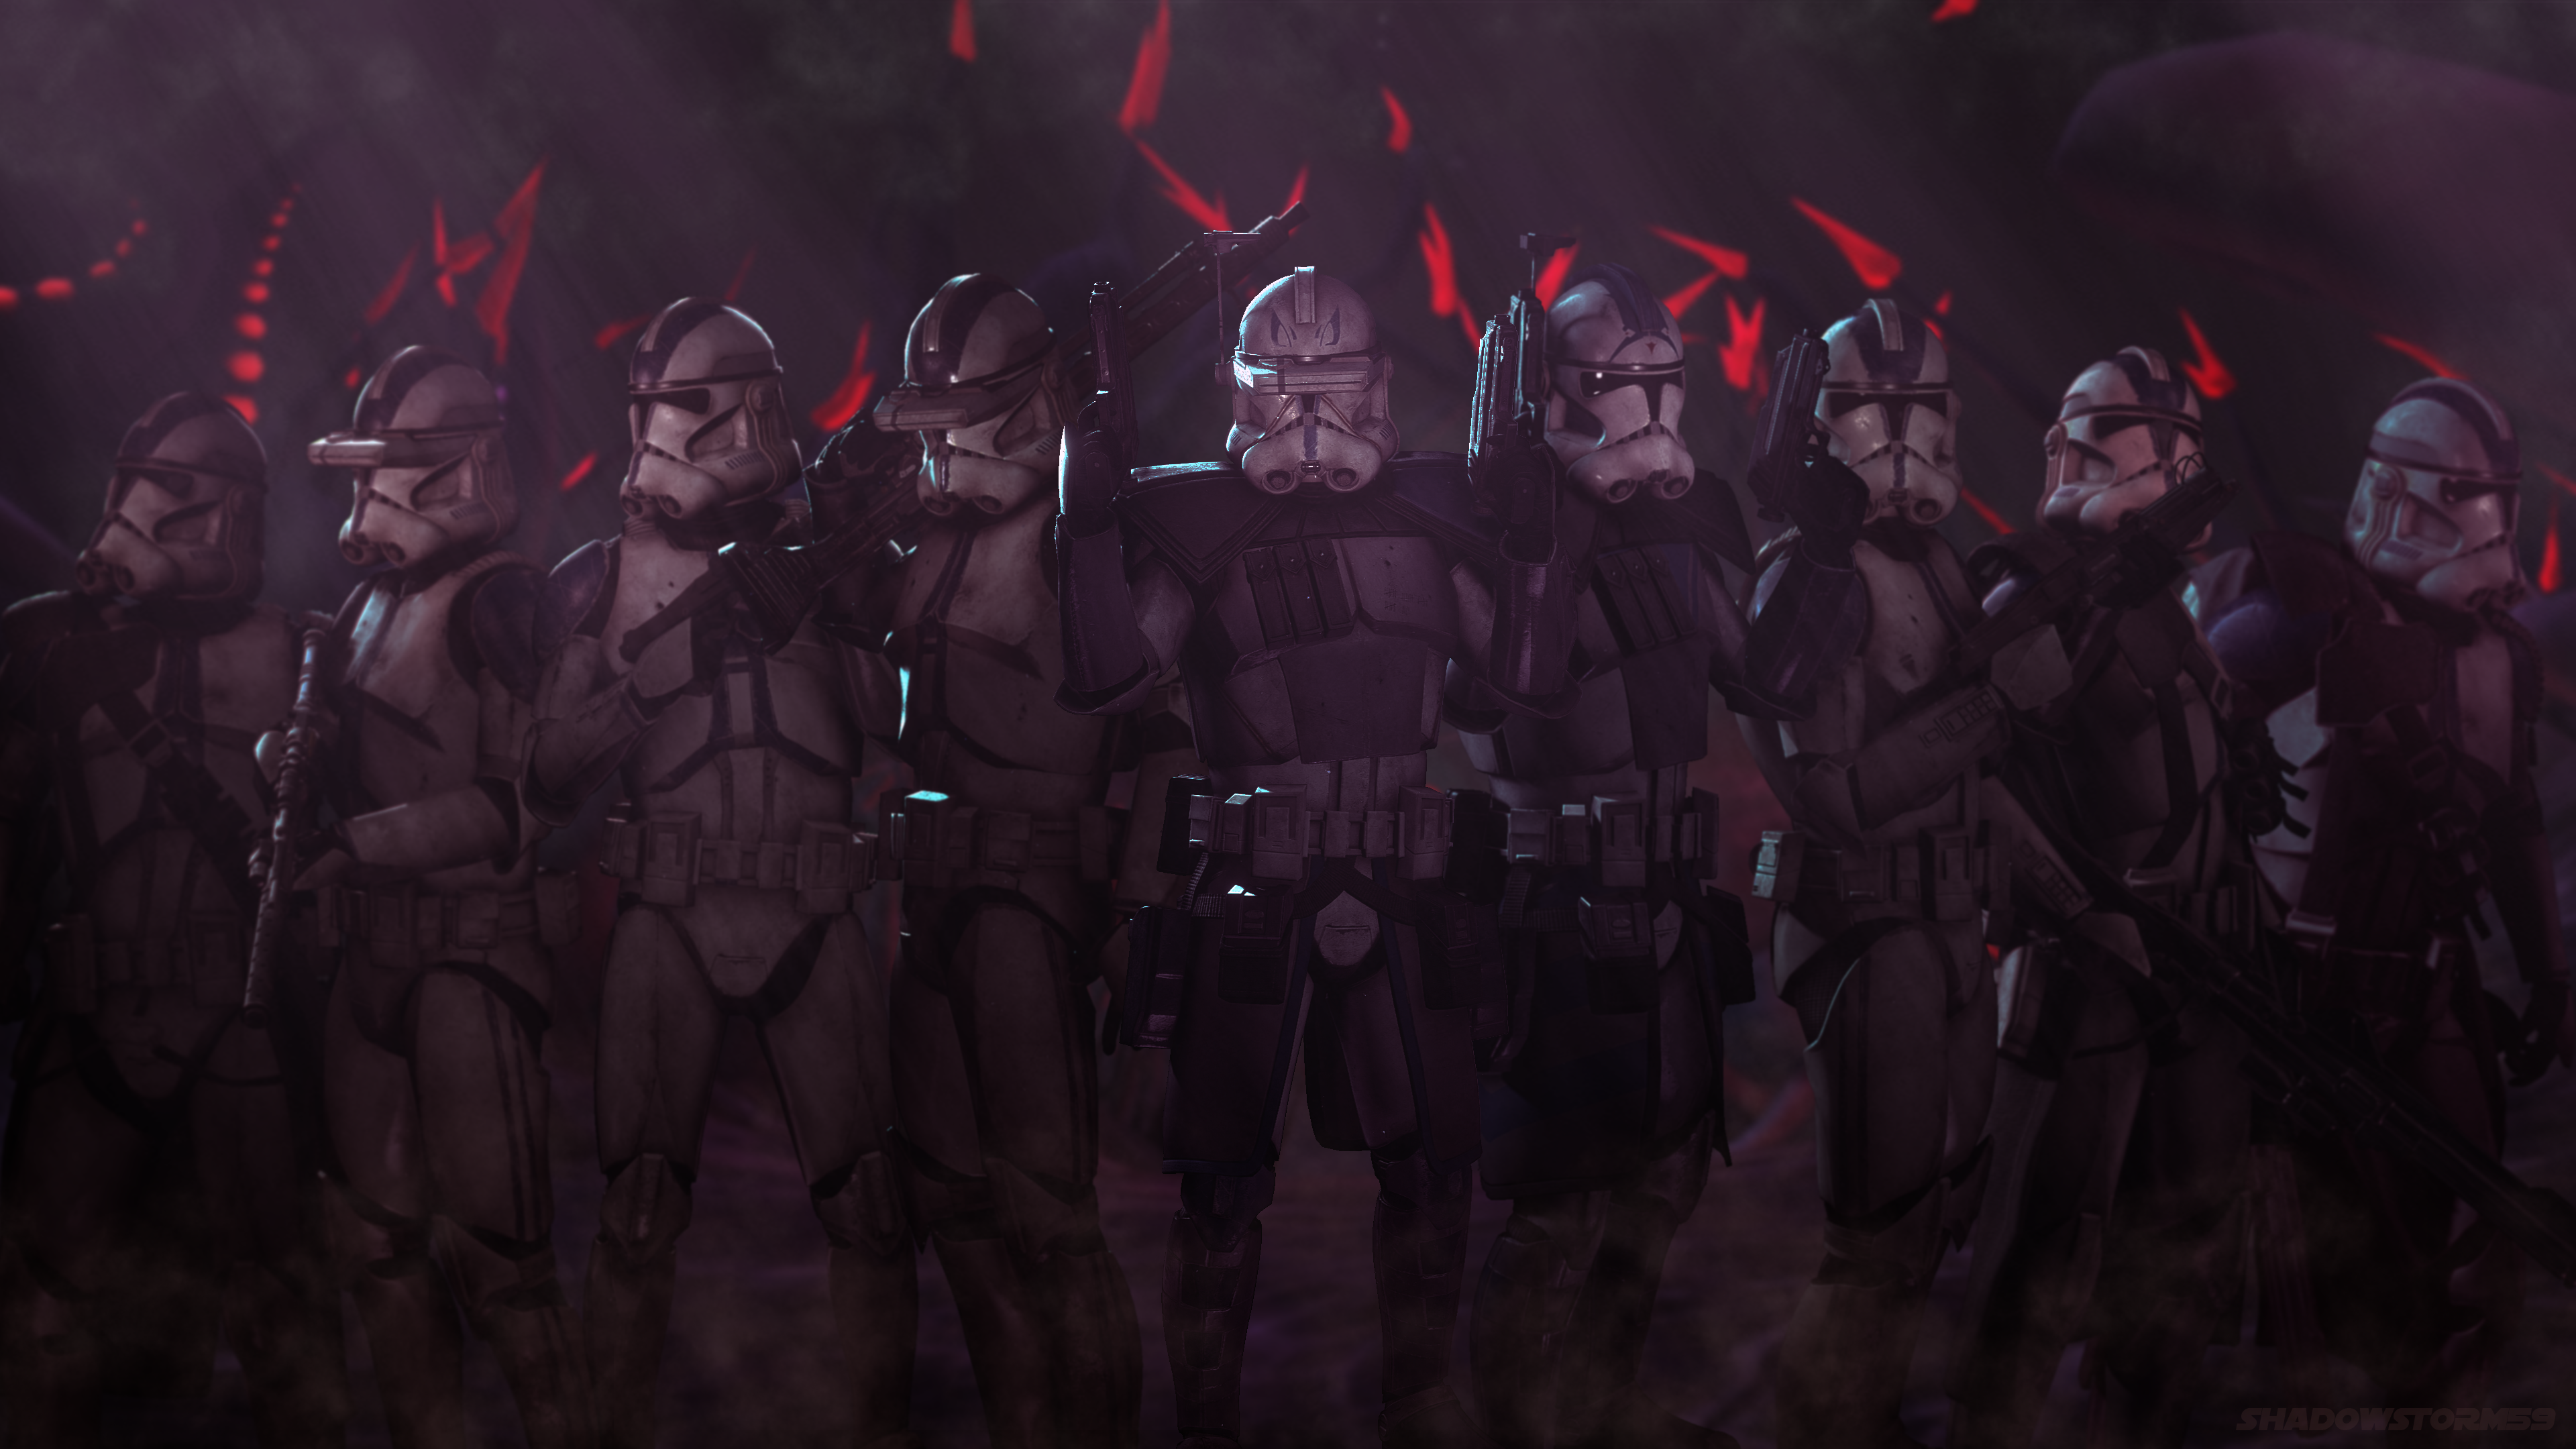 They forged the empireThe 501st legion wallpaper in 4k 3840x2160